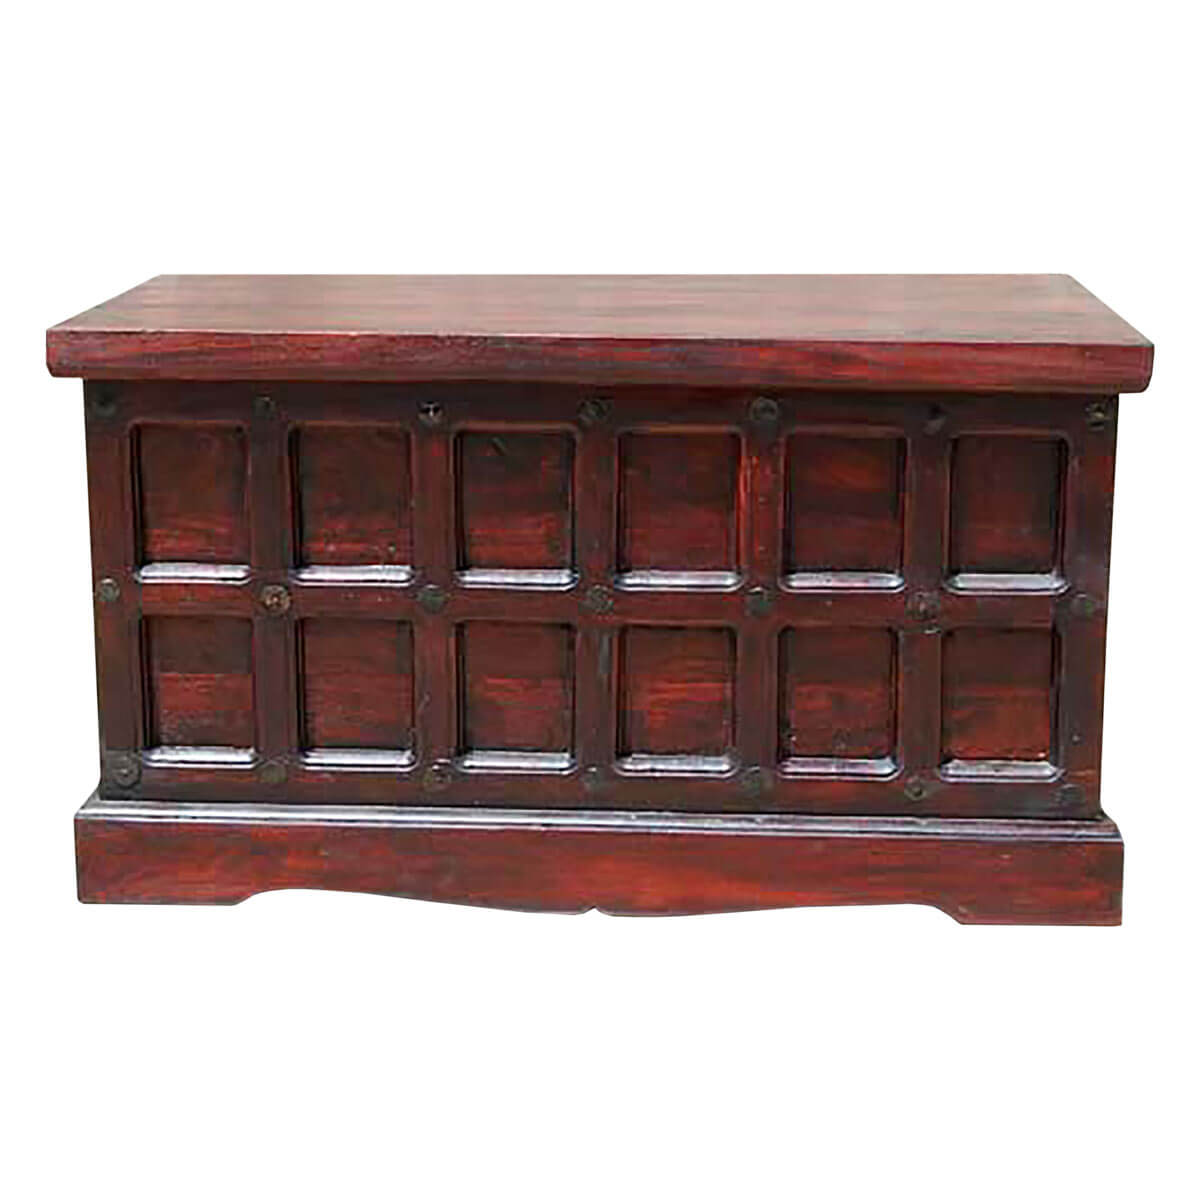 Solid Wood Chest Coffee Table: Beaufort Solid Wood Storage Chest Trunk Box Coffee Table